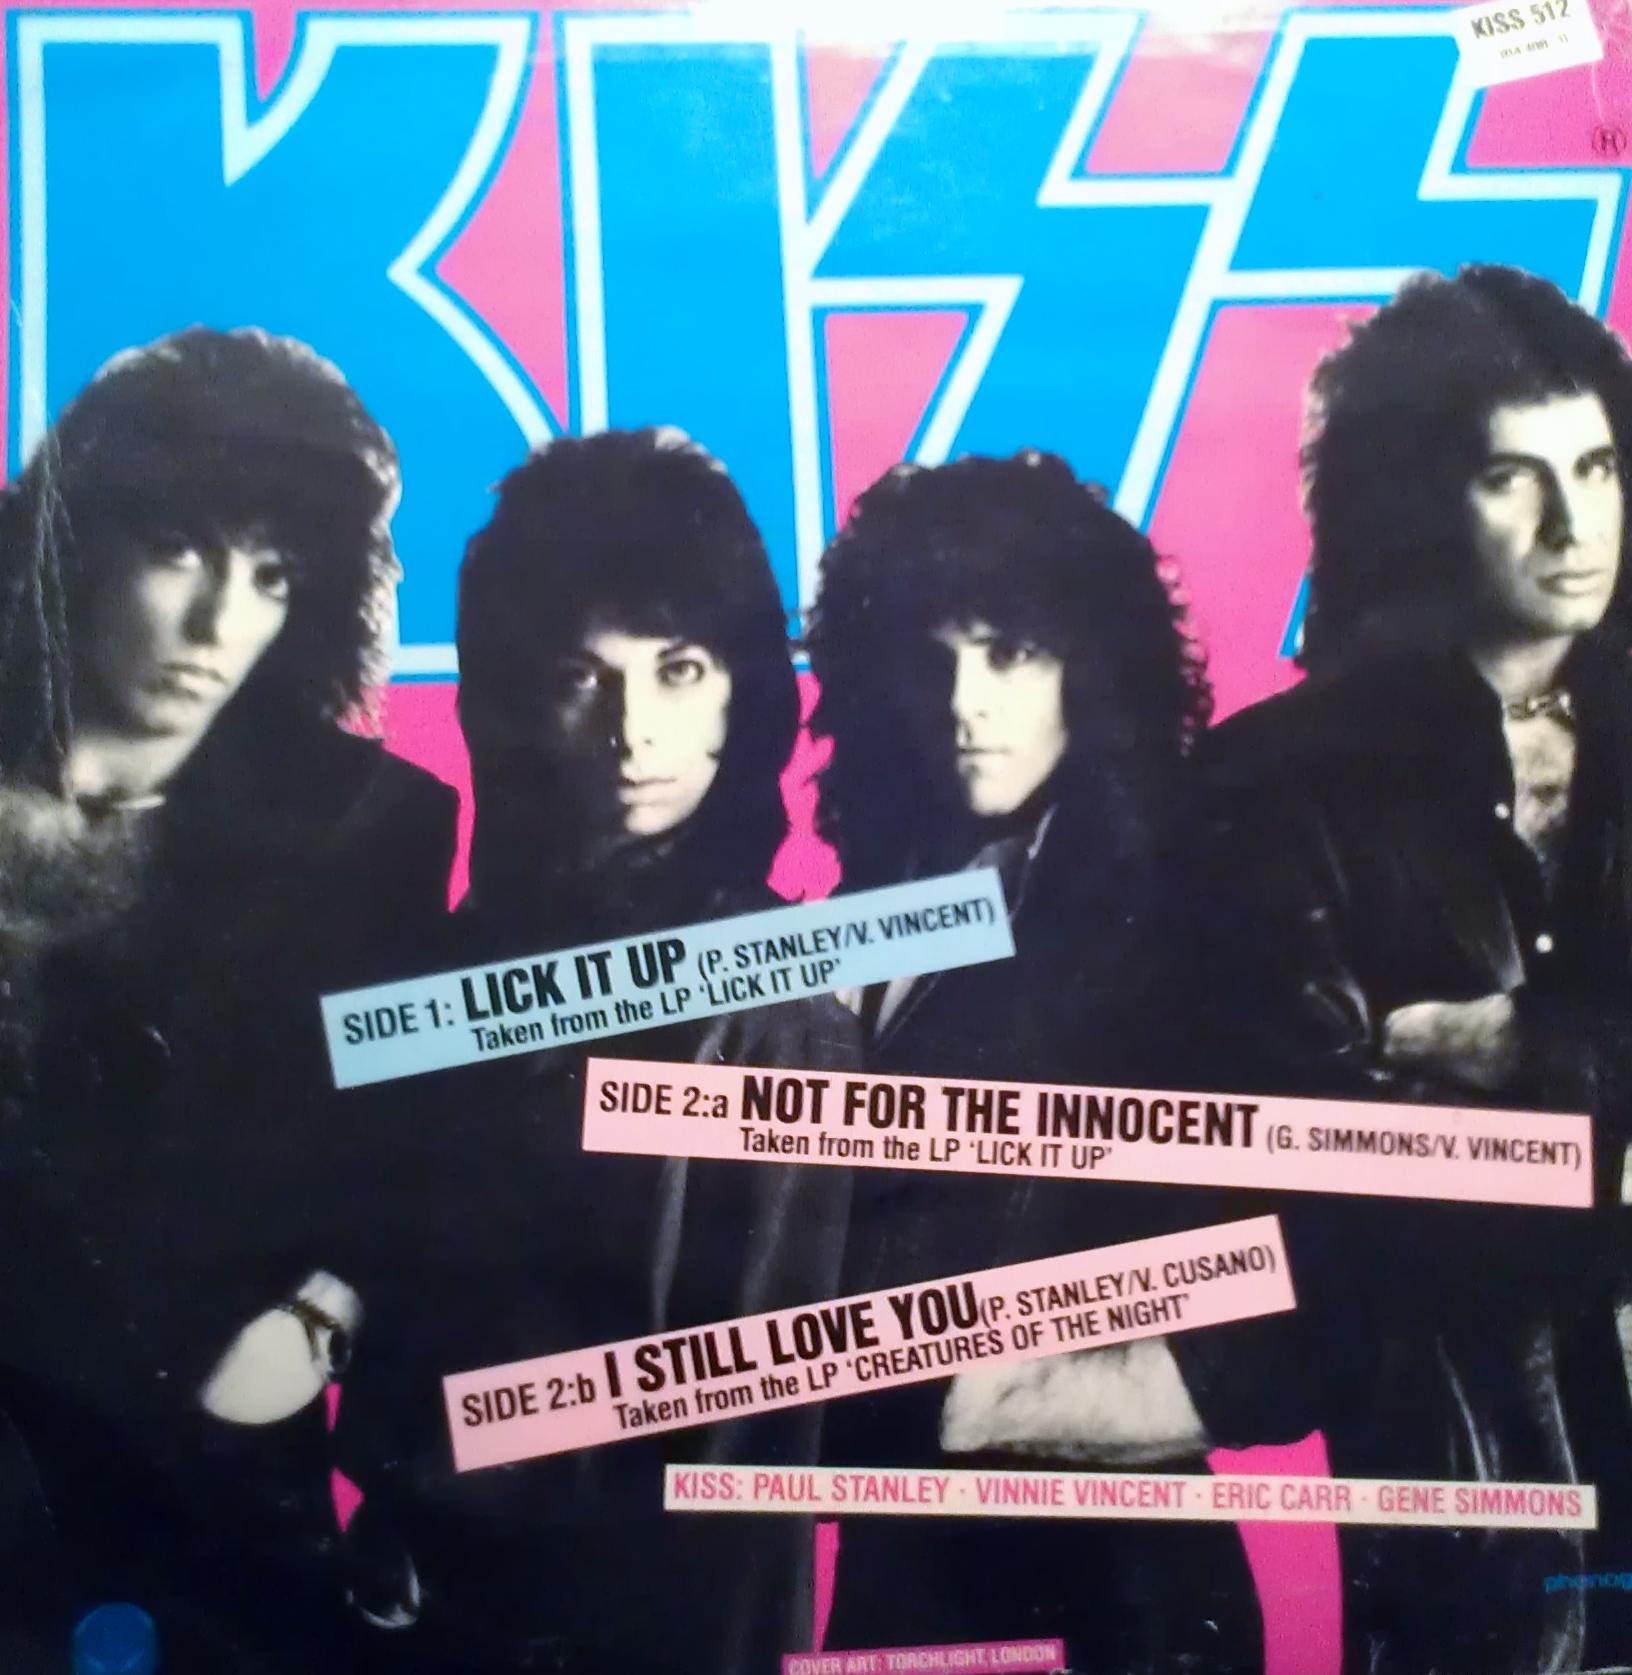 BEAUTIFUL! lyrics for lick it up by kiss need